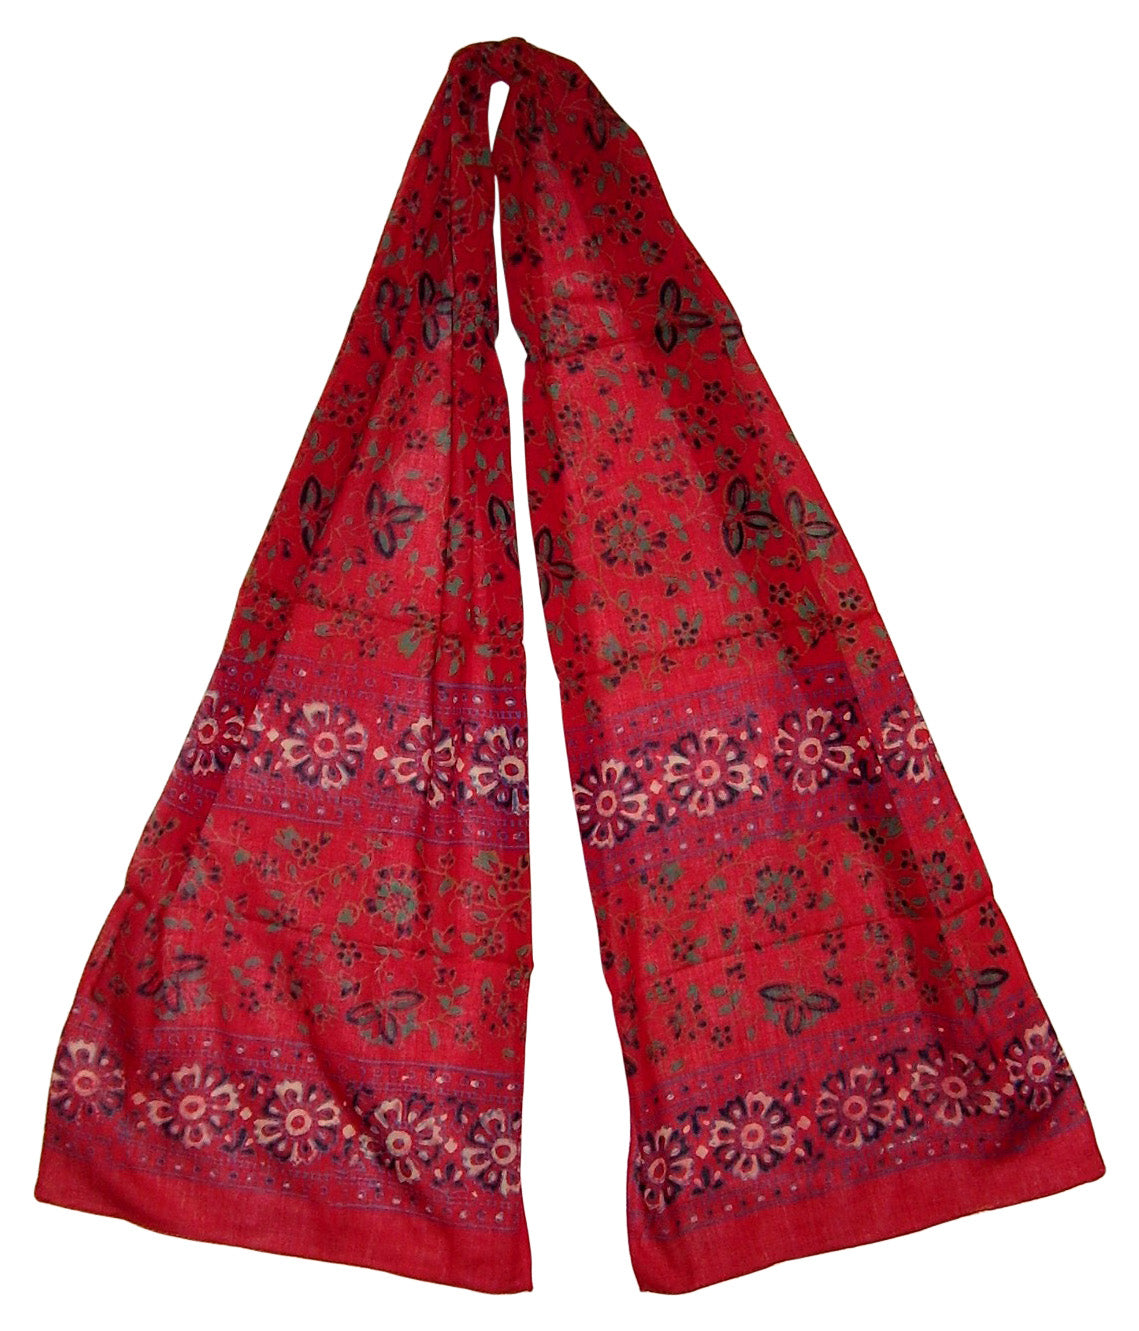 Floral Block Print Neck Scarf Light Cotton 72 x 15 Red